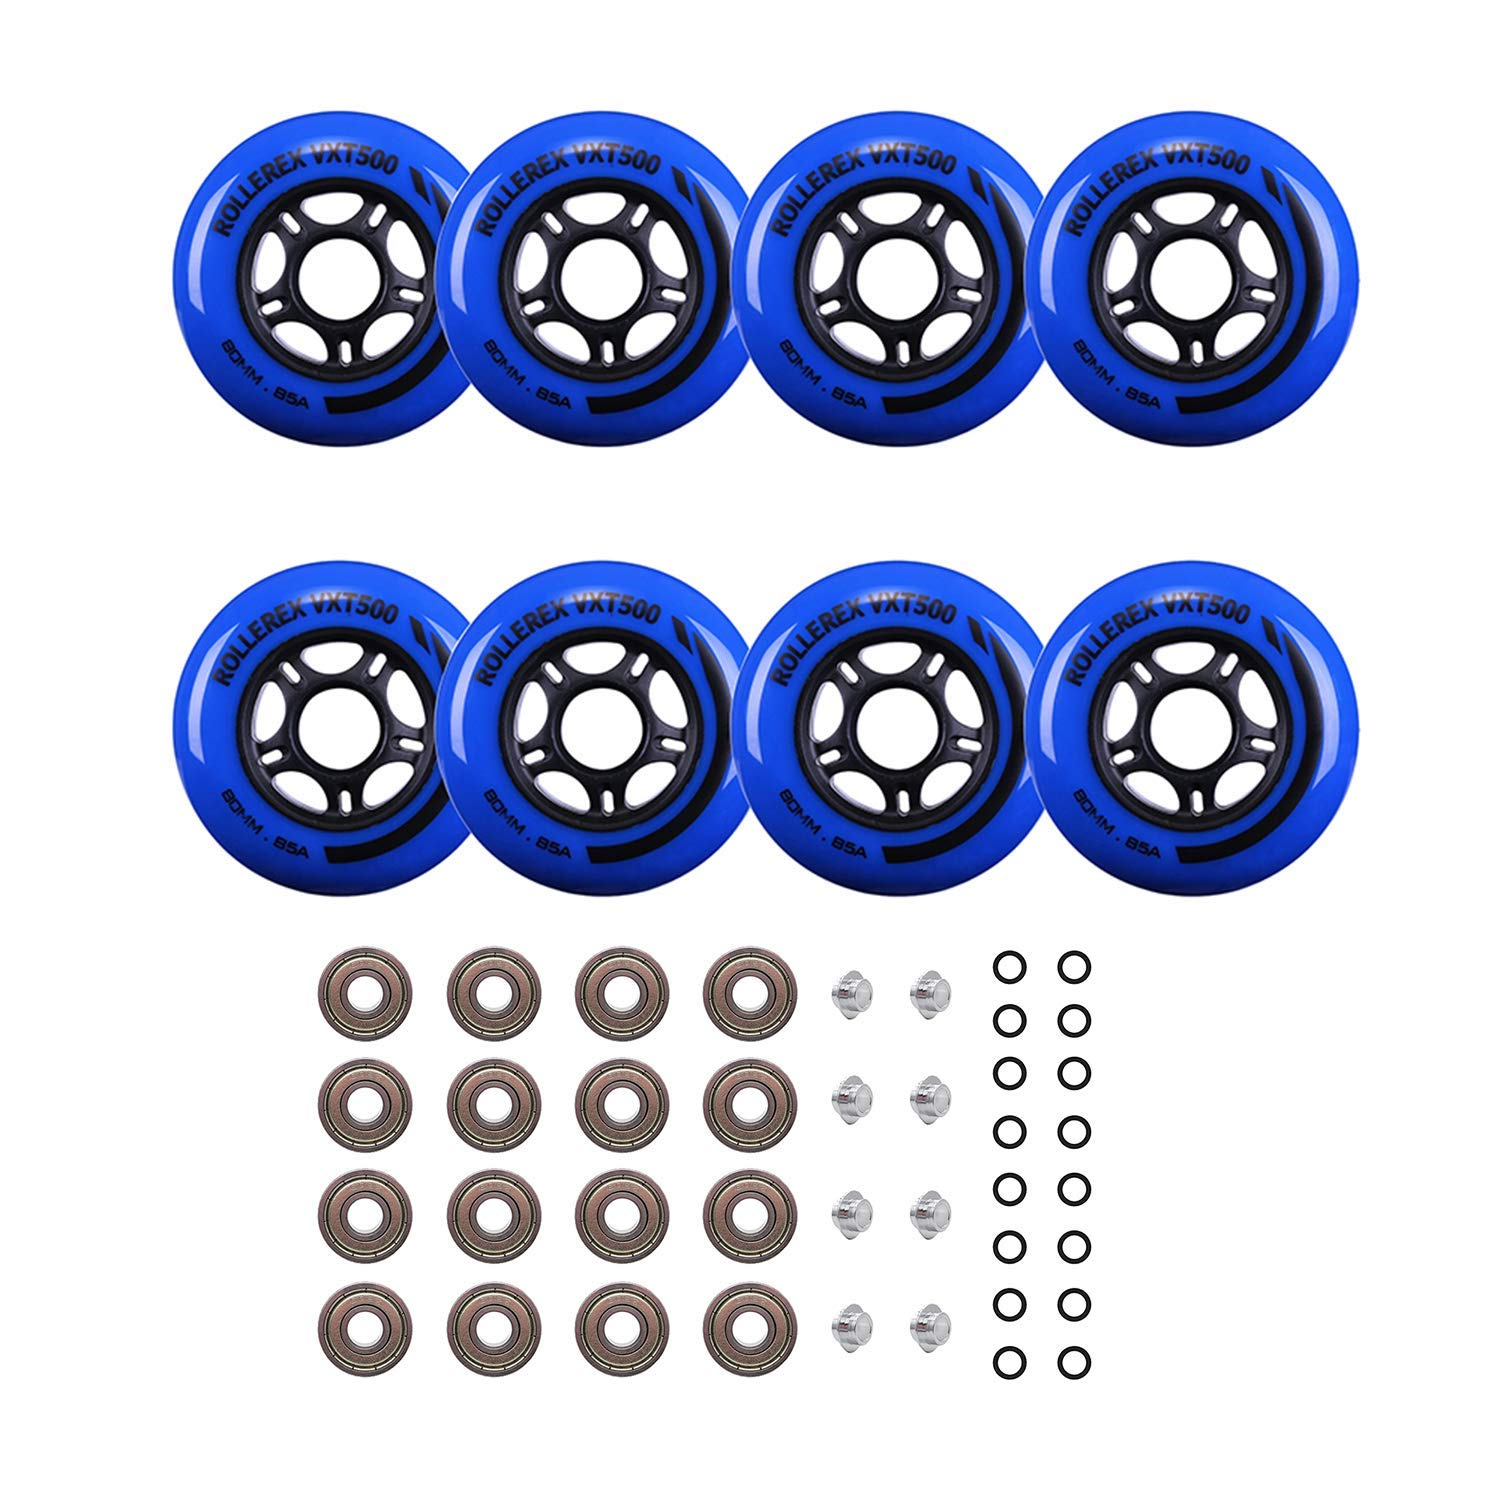 Rollerex Inline Skate Wheels VXT500 80mm (8-Pack or 2-Pack or 2 Wheels w/Bearings, Spacers and Washers) (80mm Deep Sea Blue (8 Wheels w/Bearings, spacers and washers)) by Rollerex